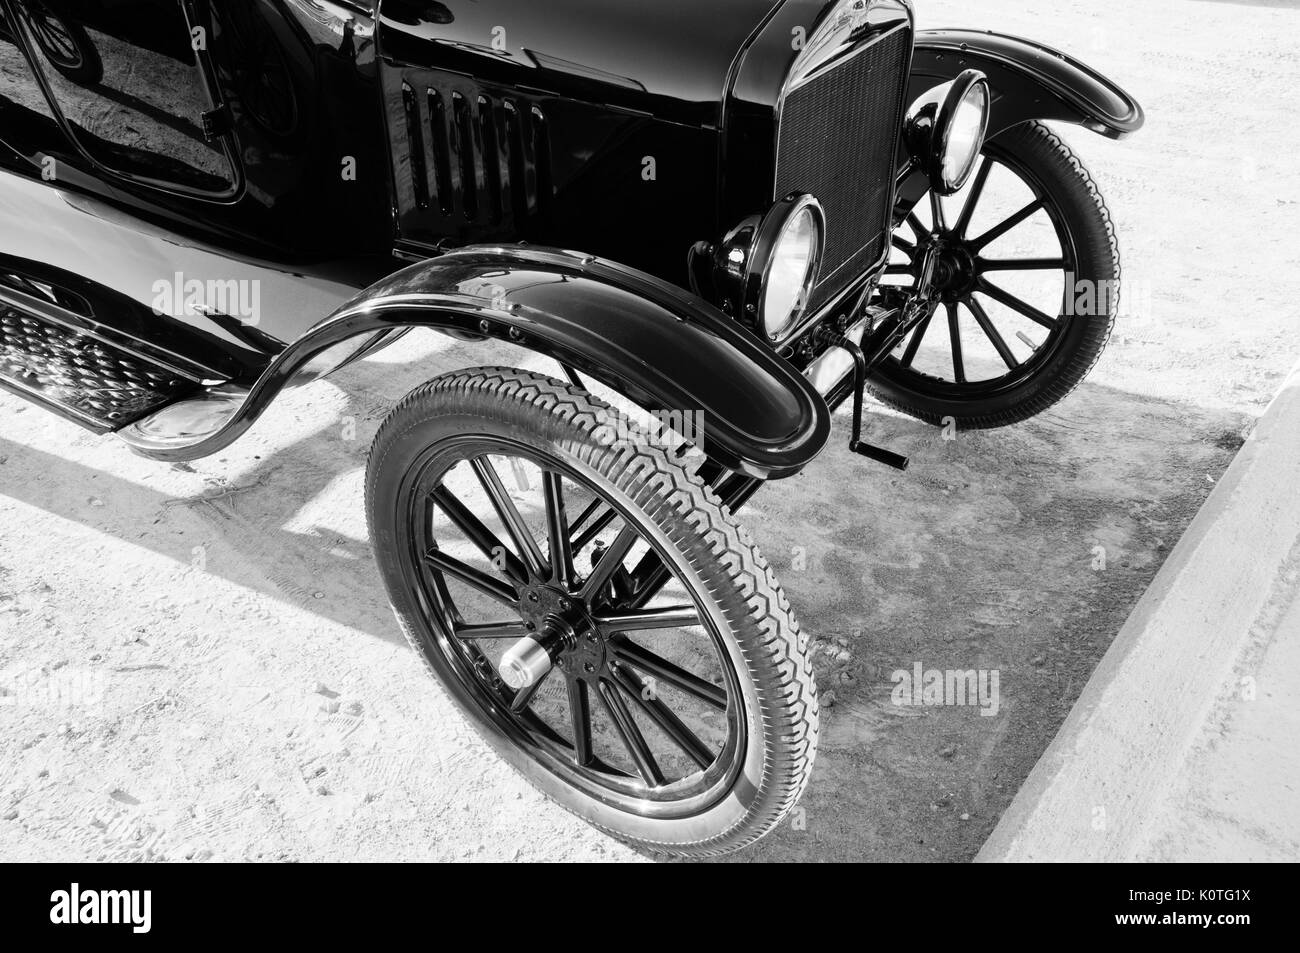 1918 Ford Model T Roadster Detail B&W - Stock Image